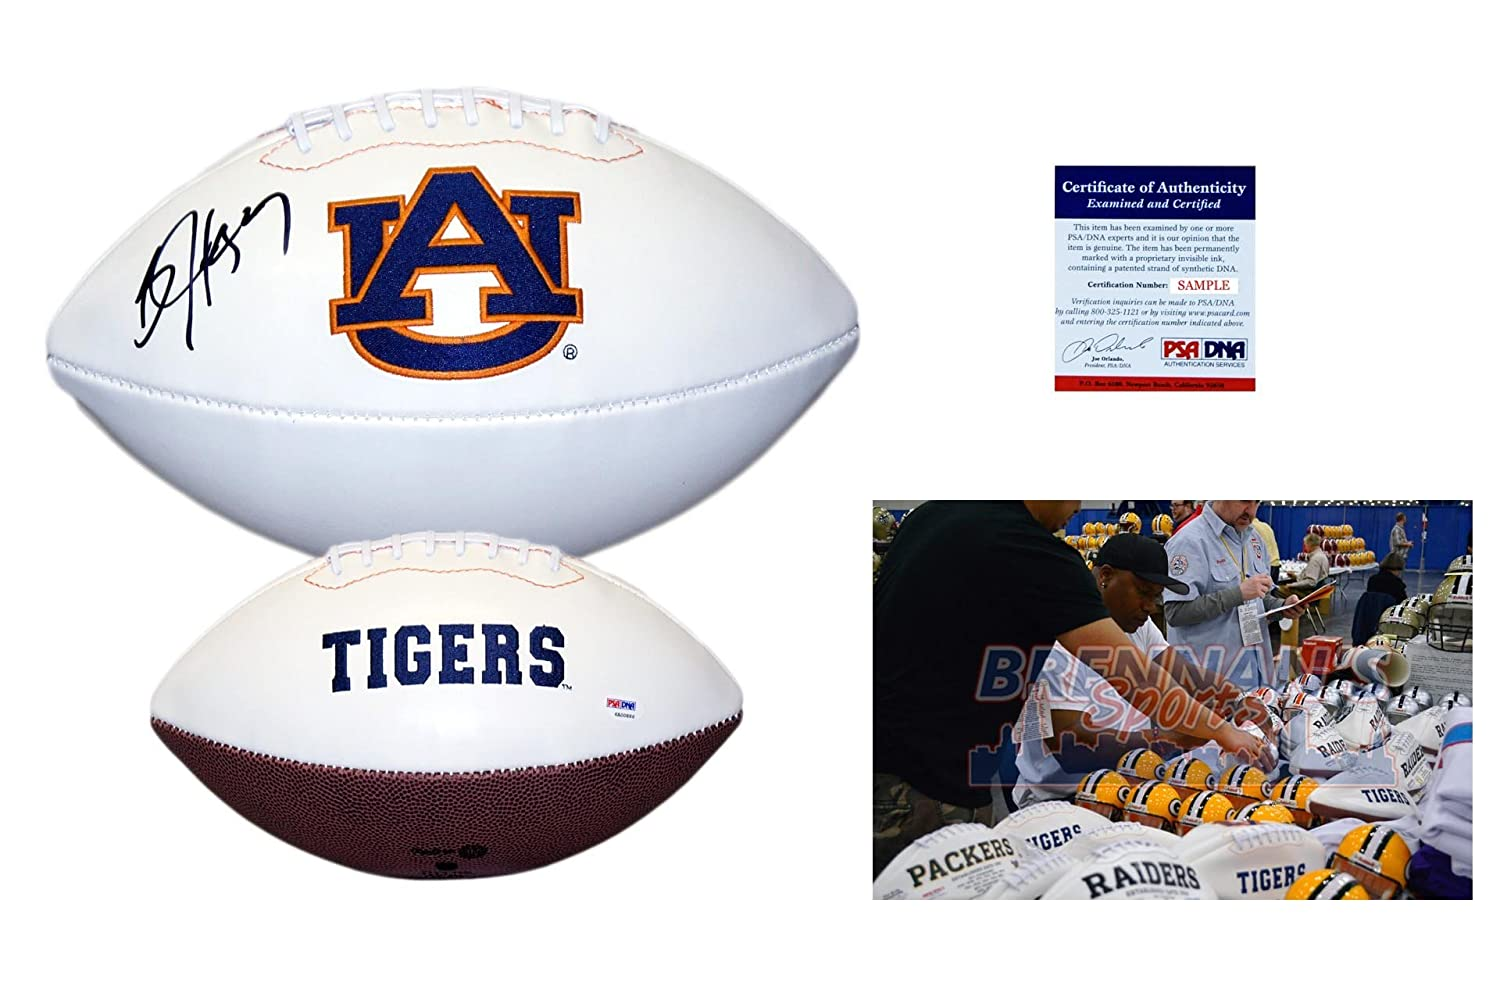 Bo Jackson Signed Football - PSA/DNA - Auburn Tigers Autographed Ball